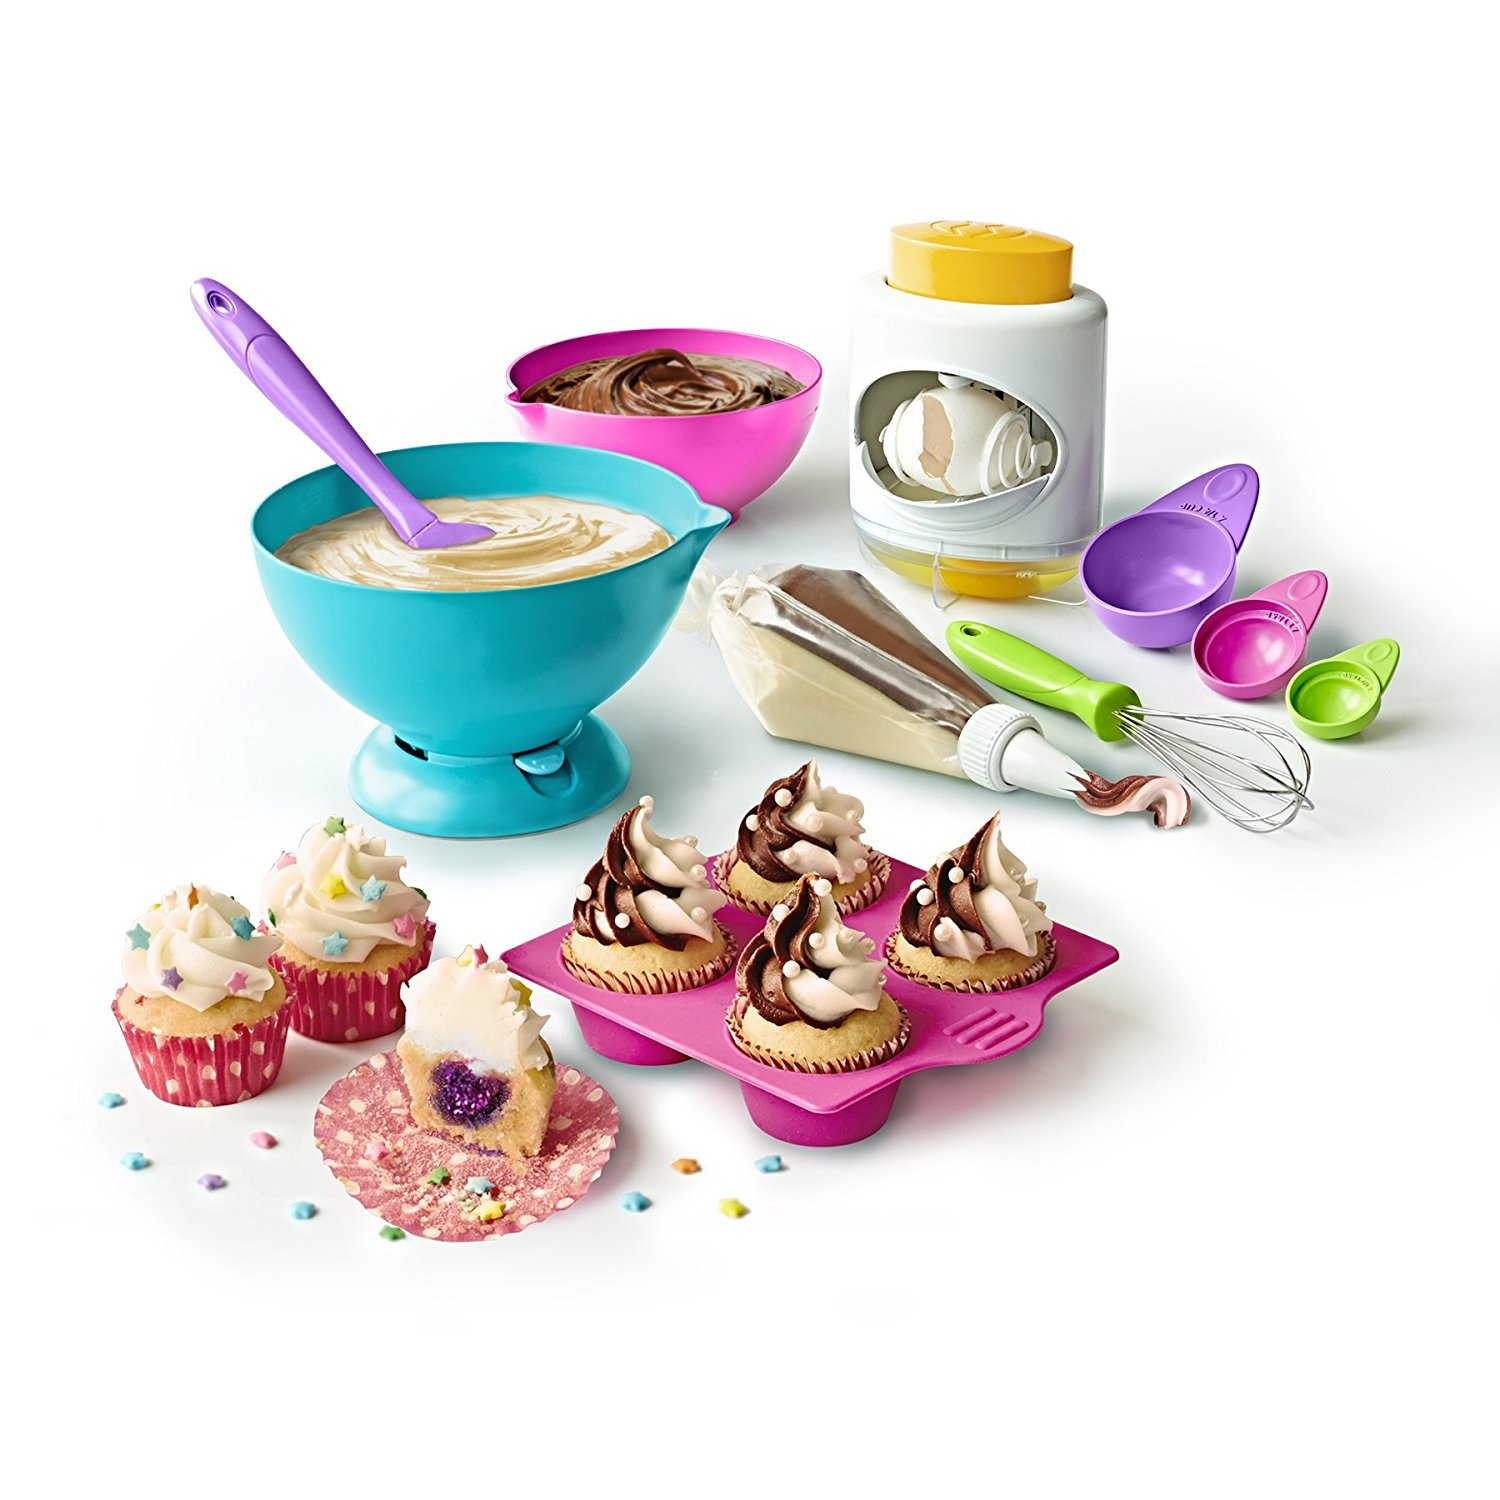 Real Cooking Ultimate Baking Starter Set - 37 Pc. Kit Includes Sprinkles, Cake & Frosting Mix, Nylon Recipe DonutsCake Pc Bottle appetizers Cupcake 3Pack Development.., By Skyrocket Toys